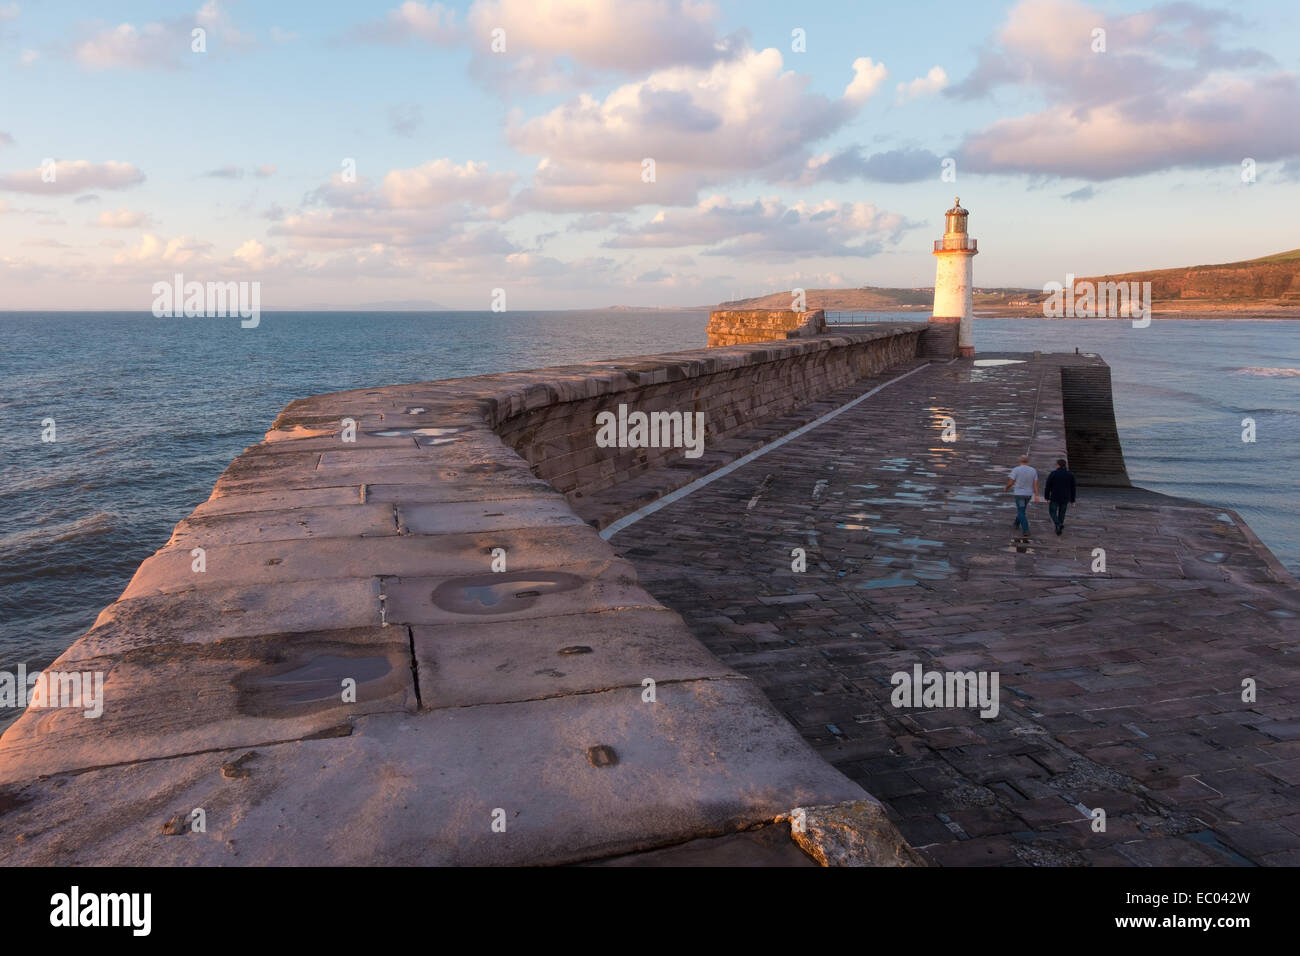 The breakwater and lighthouse at the harbour at Whitehaven, Cumbria. - Stock Image